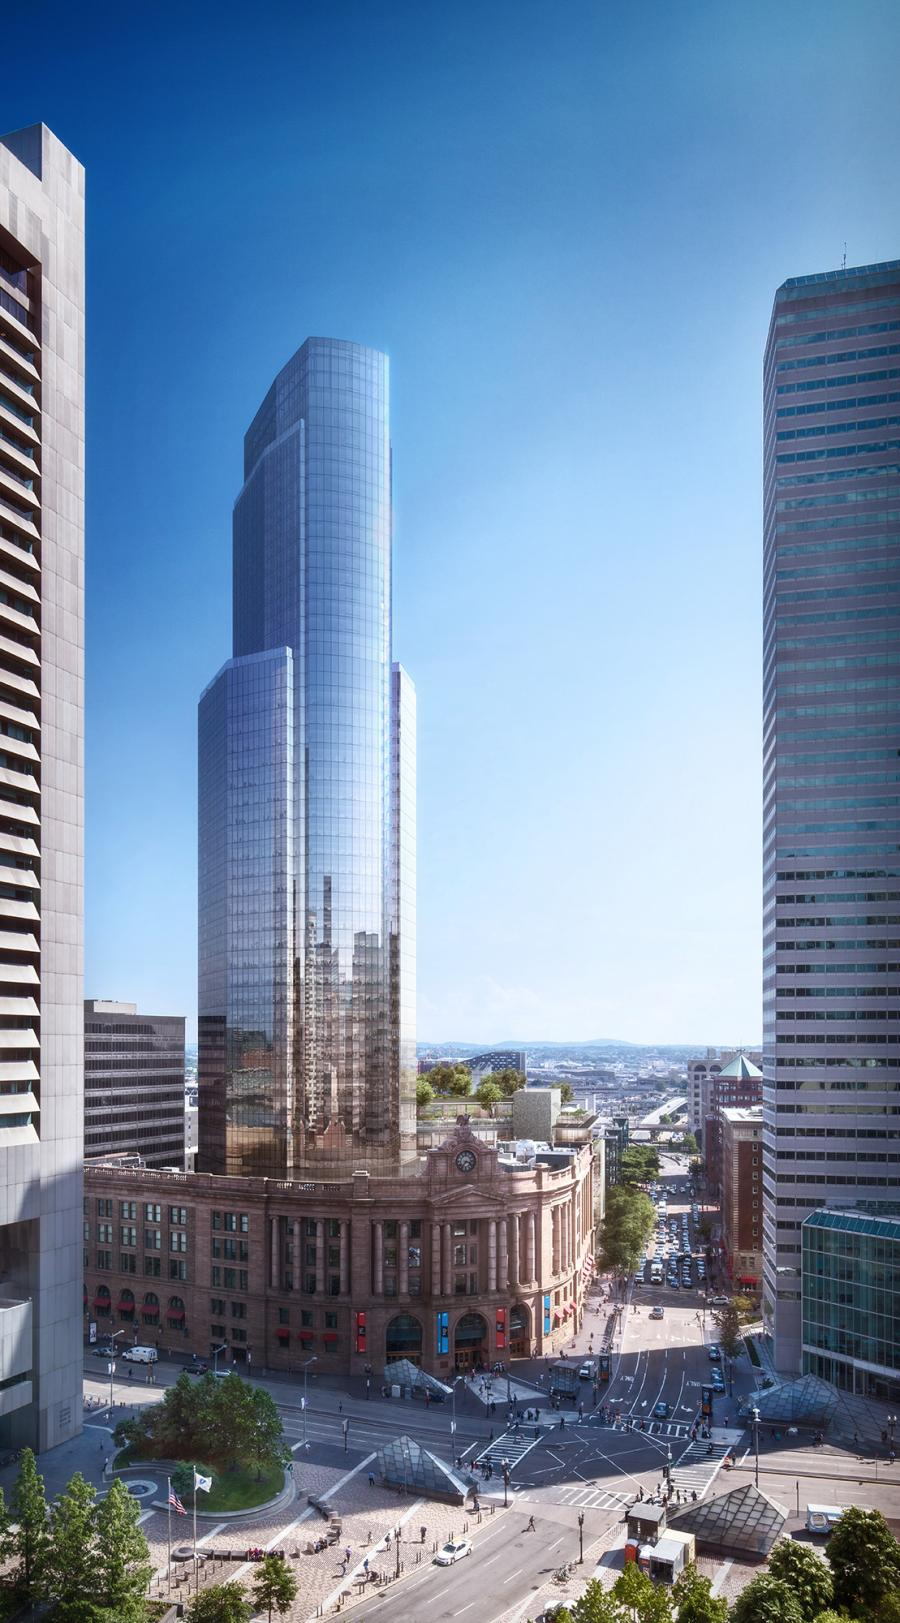 Anticipated for delivery in 2024, the first phase of the project will offer approximately 660,000 rentable square feet of Class AA office and retail space as well as approximately 166 residential condominium units and more than 500 parking spaces.